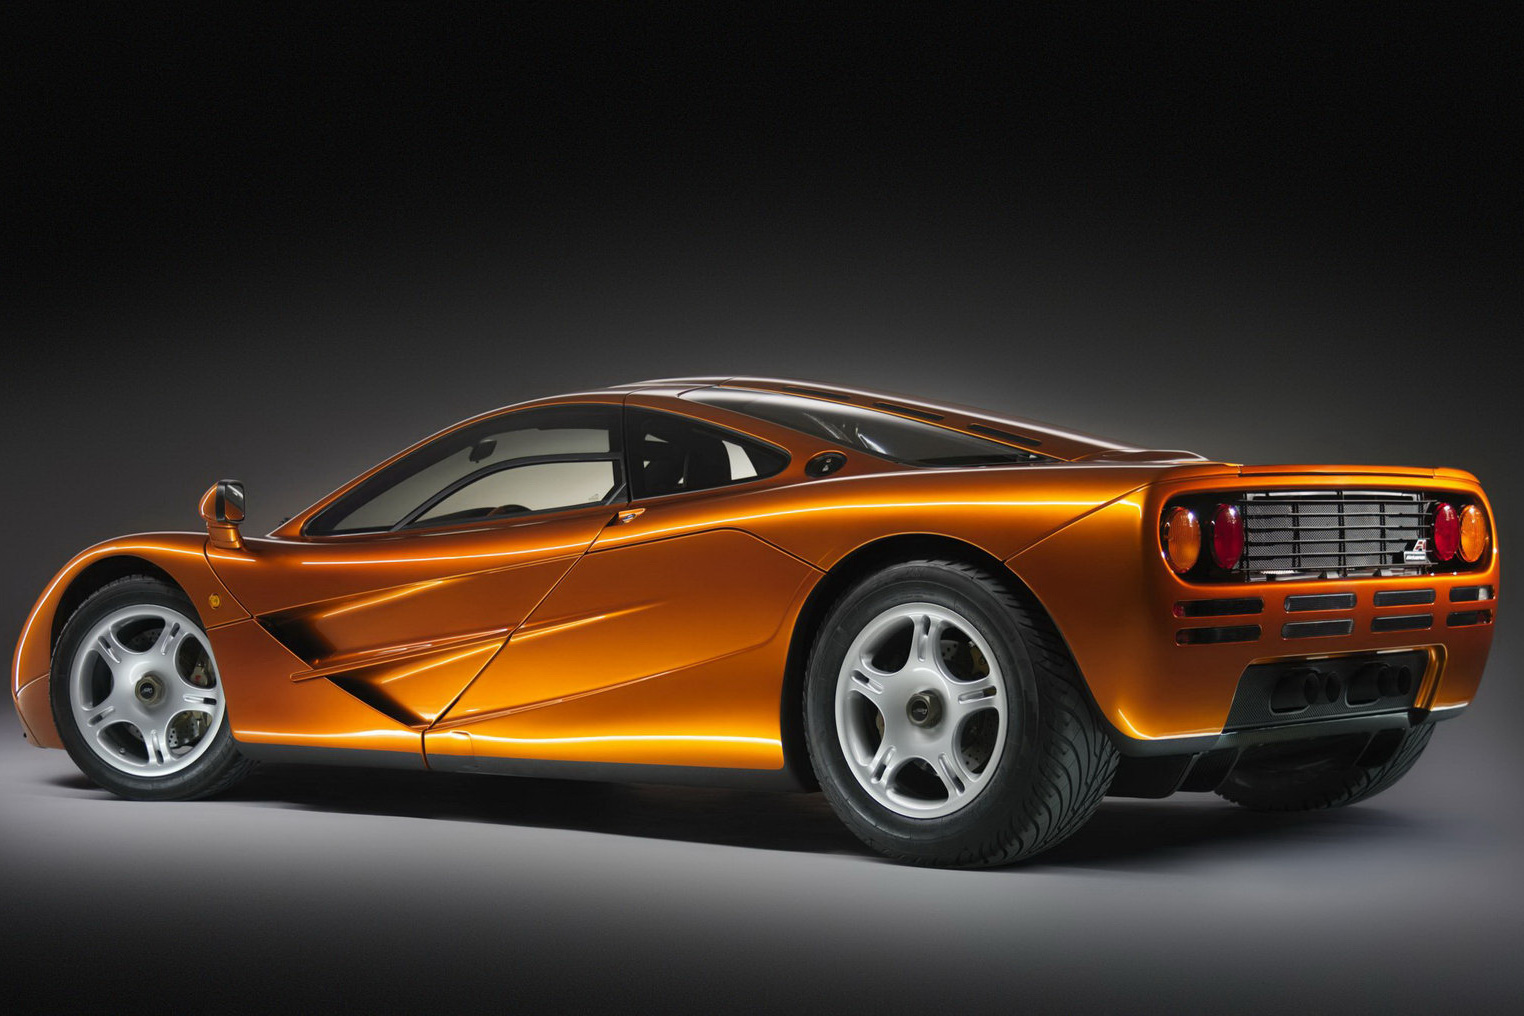 2012 McLaren Iconic F1 Successor 2 The Successor Will Come – 2012 McLaren Iconic F1 Successor!